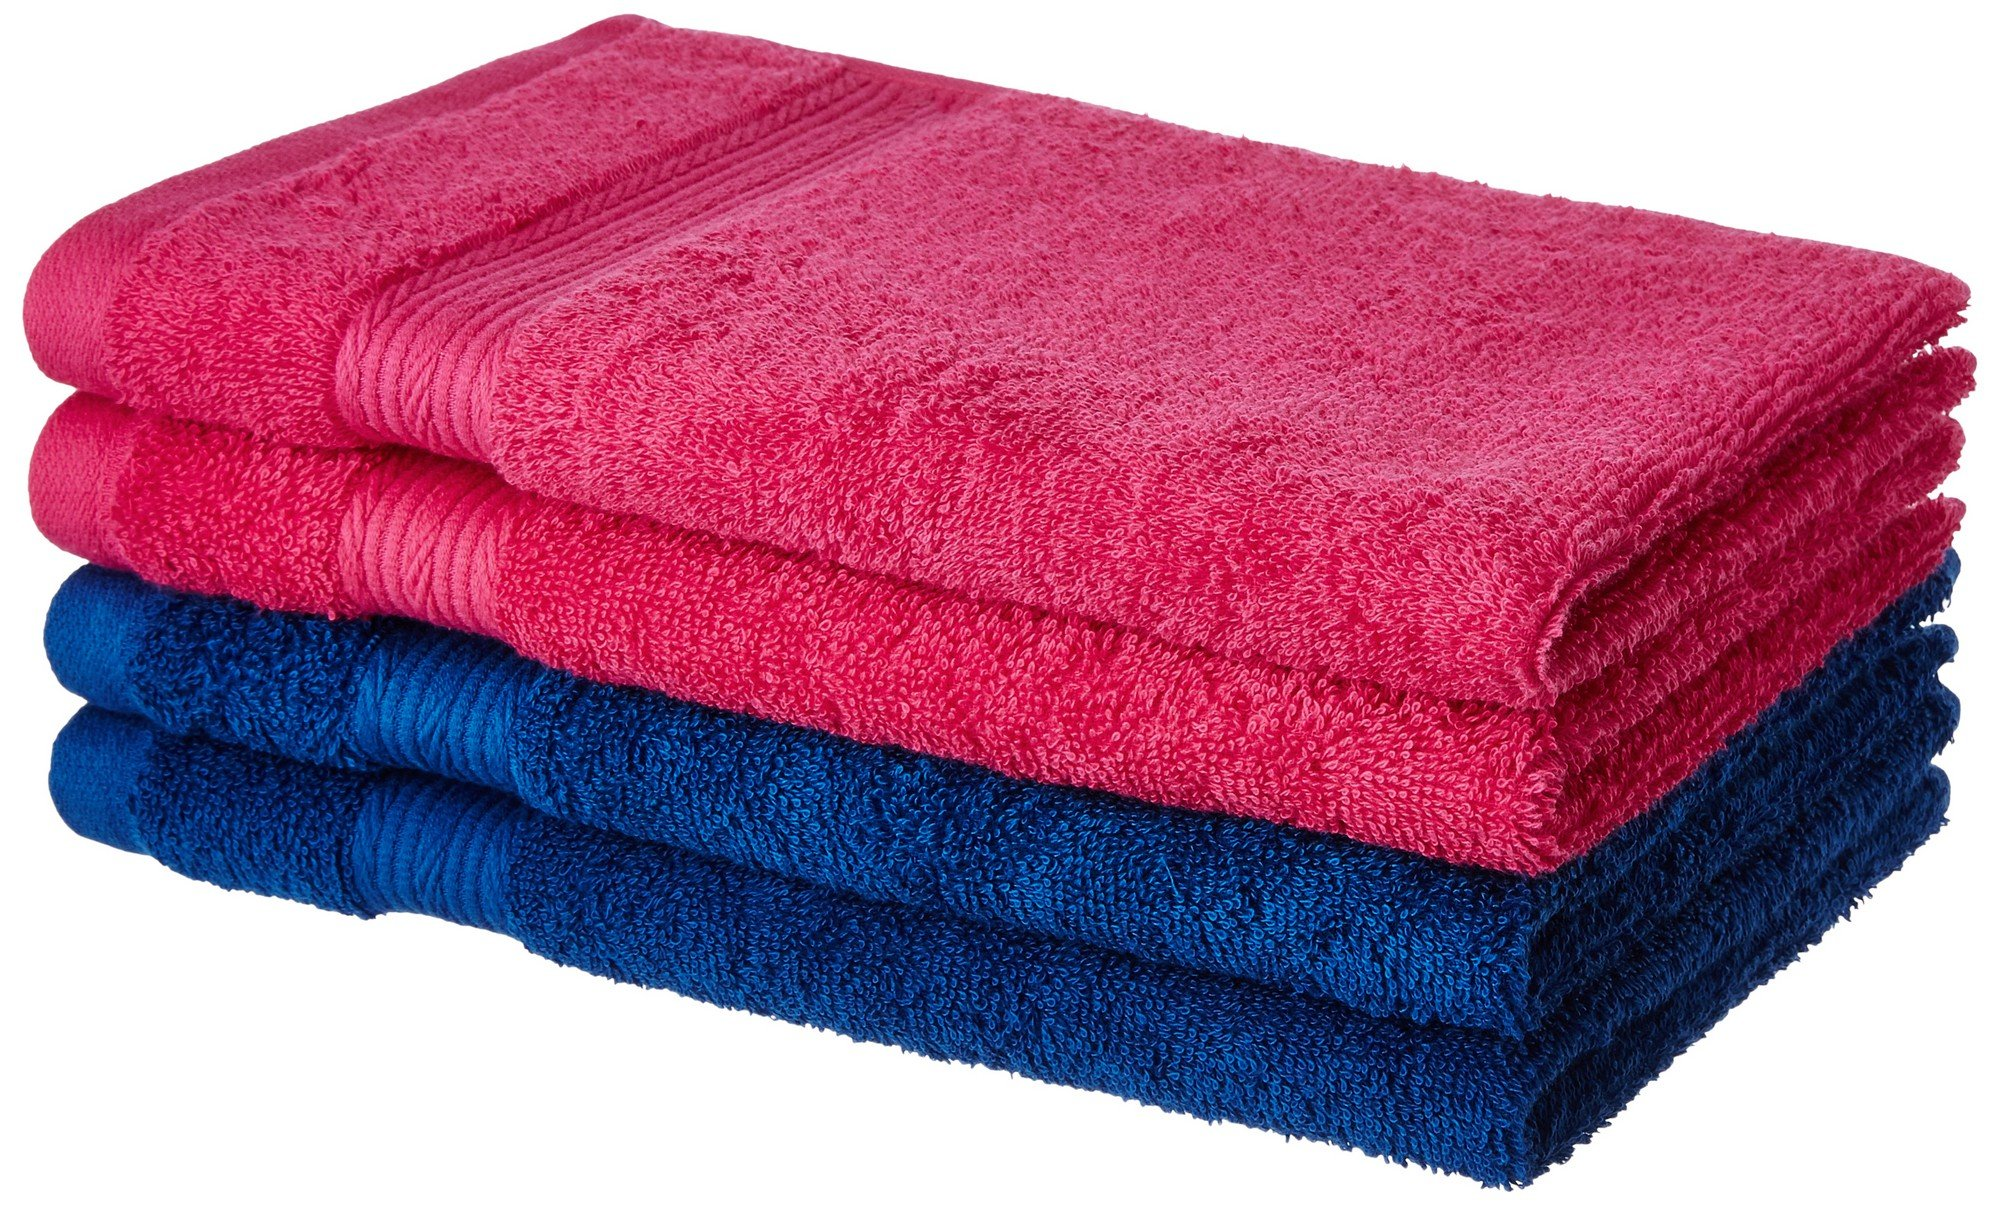 Amazon price history for Amazon Brand - Solimo 100% Cotton 4 Piece Hand Towel Set, 500 GSM (Iris Blue and Paradise Pink)